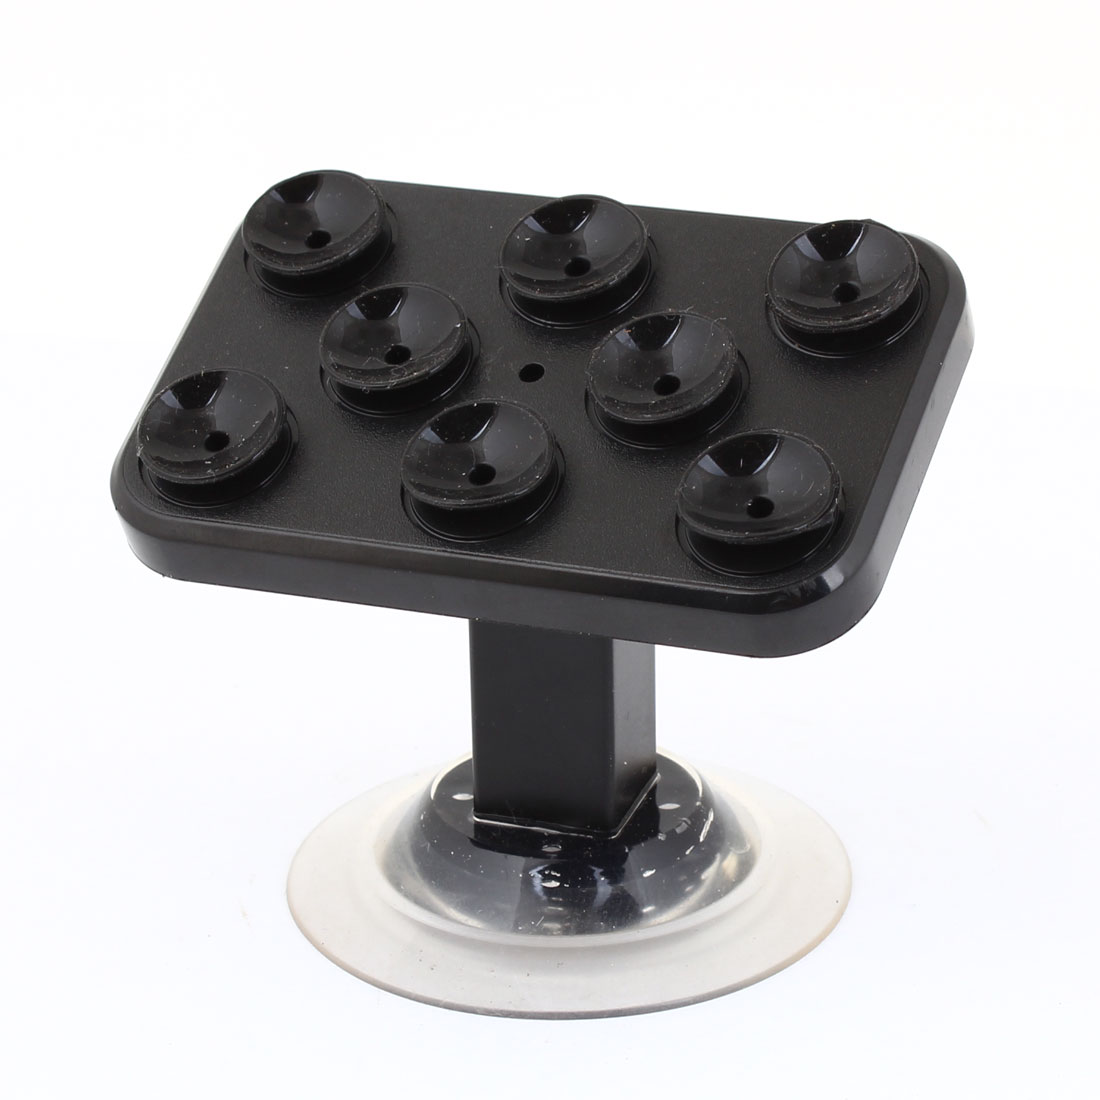 Black 360 Degrees Rotating Automobile Desktop Bracket Holder for Car